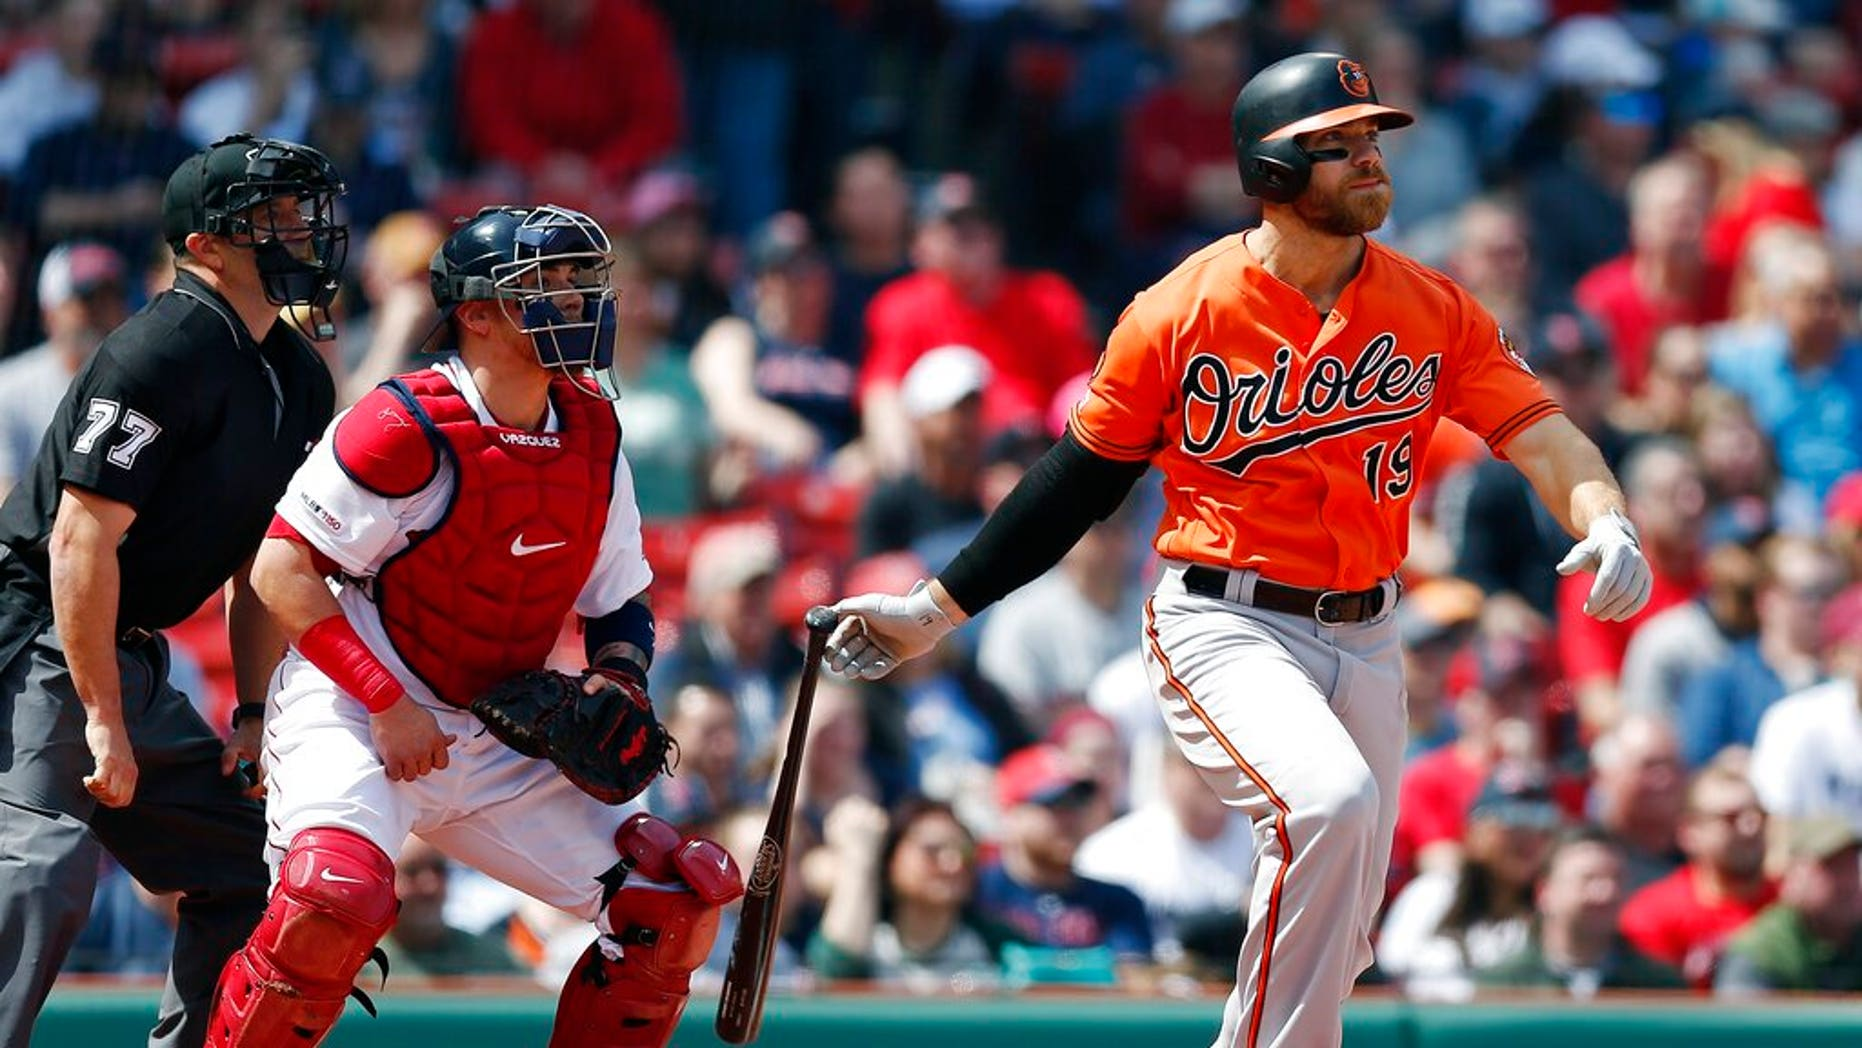 Chris Davis of Baltimore Orioles watches his single with two points ahead of Christian Vazquez of the Boston Red Sox in the first round of a baseball game in Boston on Saturday, April 13, 2019.